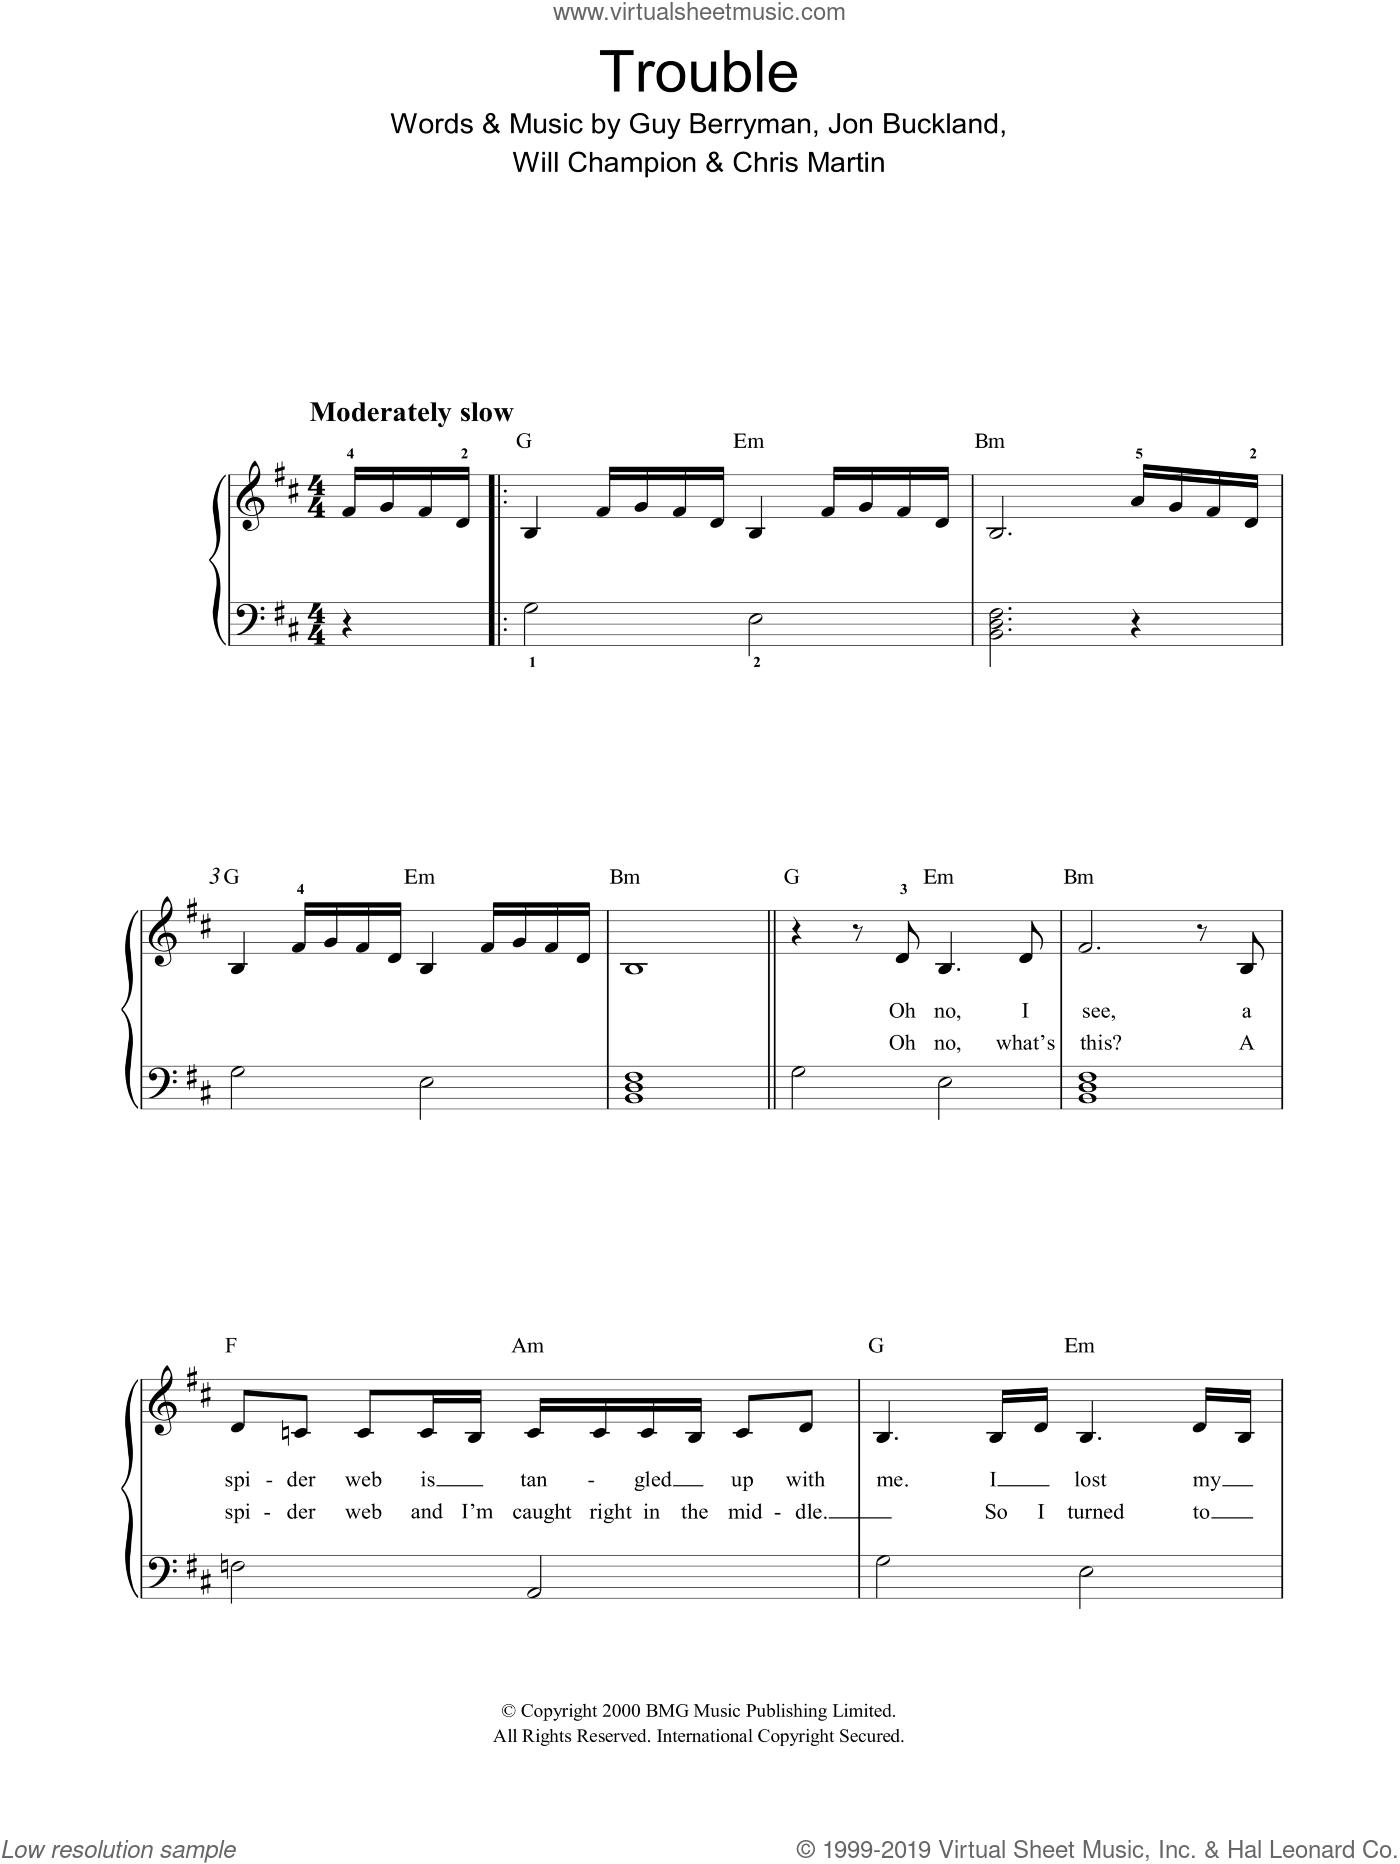 Trouble sheet music for piano solo by Coldplay, Chris Martin, G Berryman, Guy Berryman, J Jon Buckland, Jon Buckland, W & Martin, C Champion and Will Champion, easy skill level